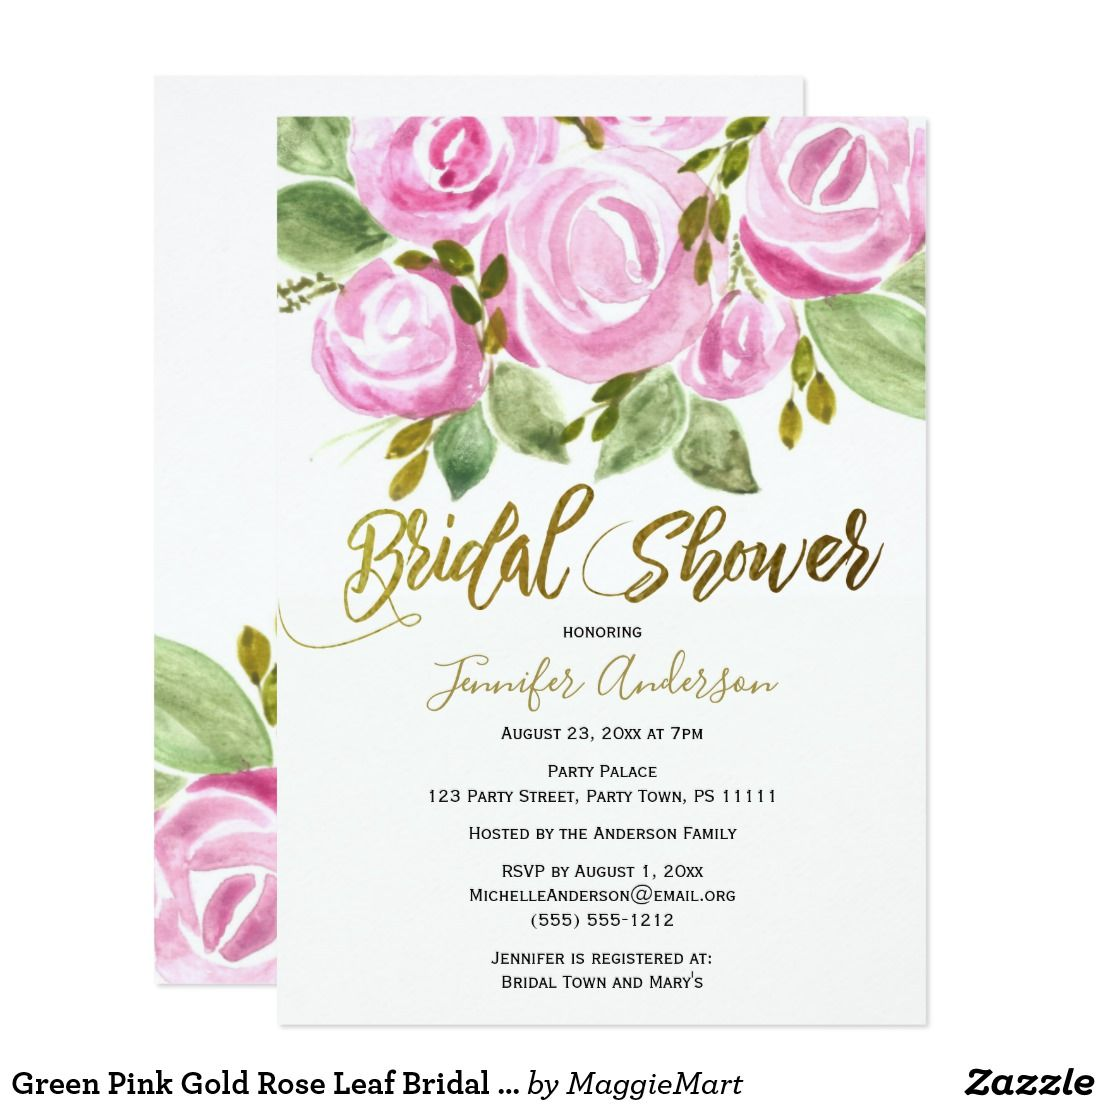 Green Pink Gold Rose Leaf Bridal Shower Card Bridal Shower Cards